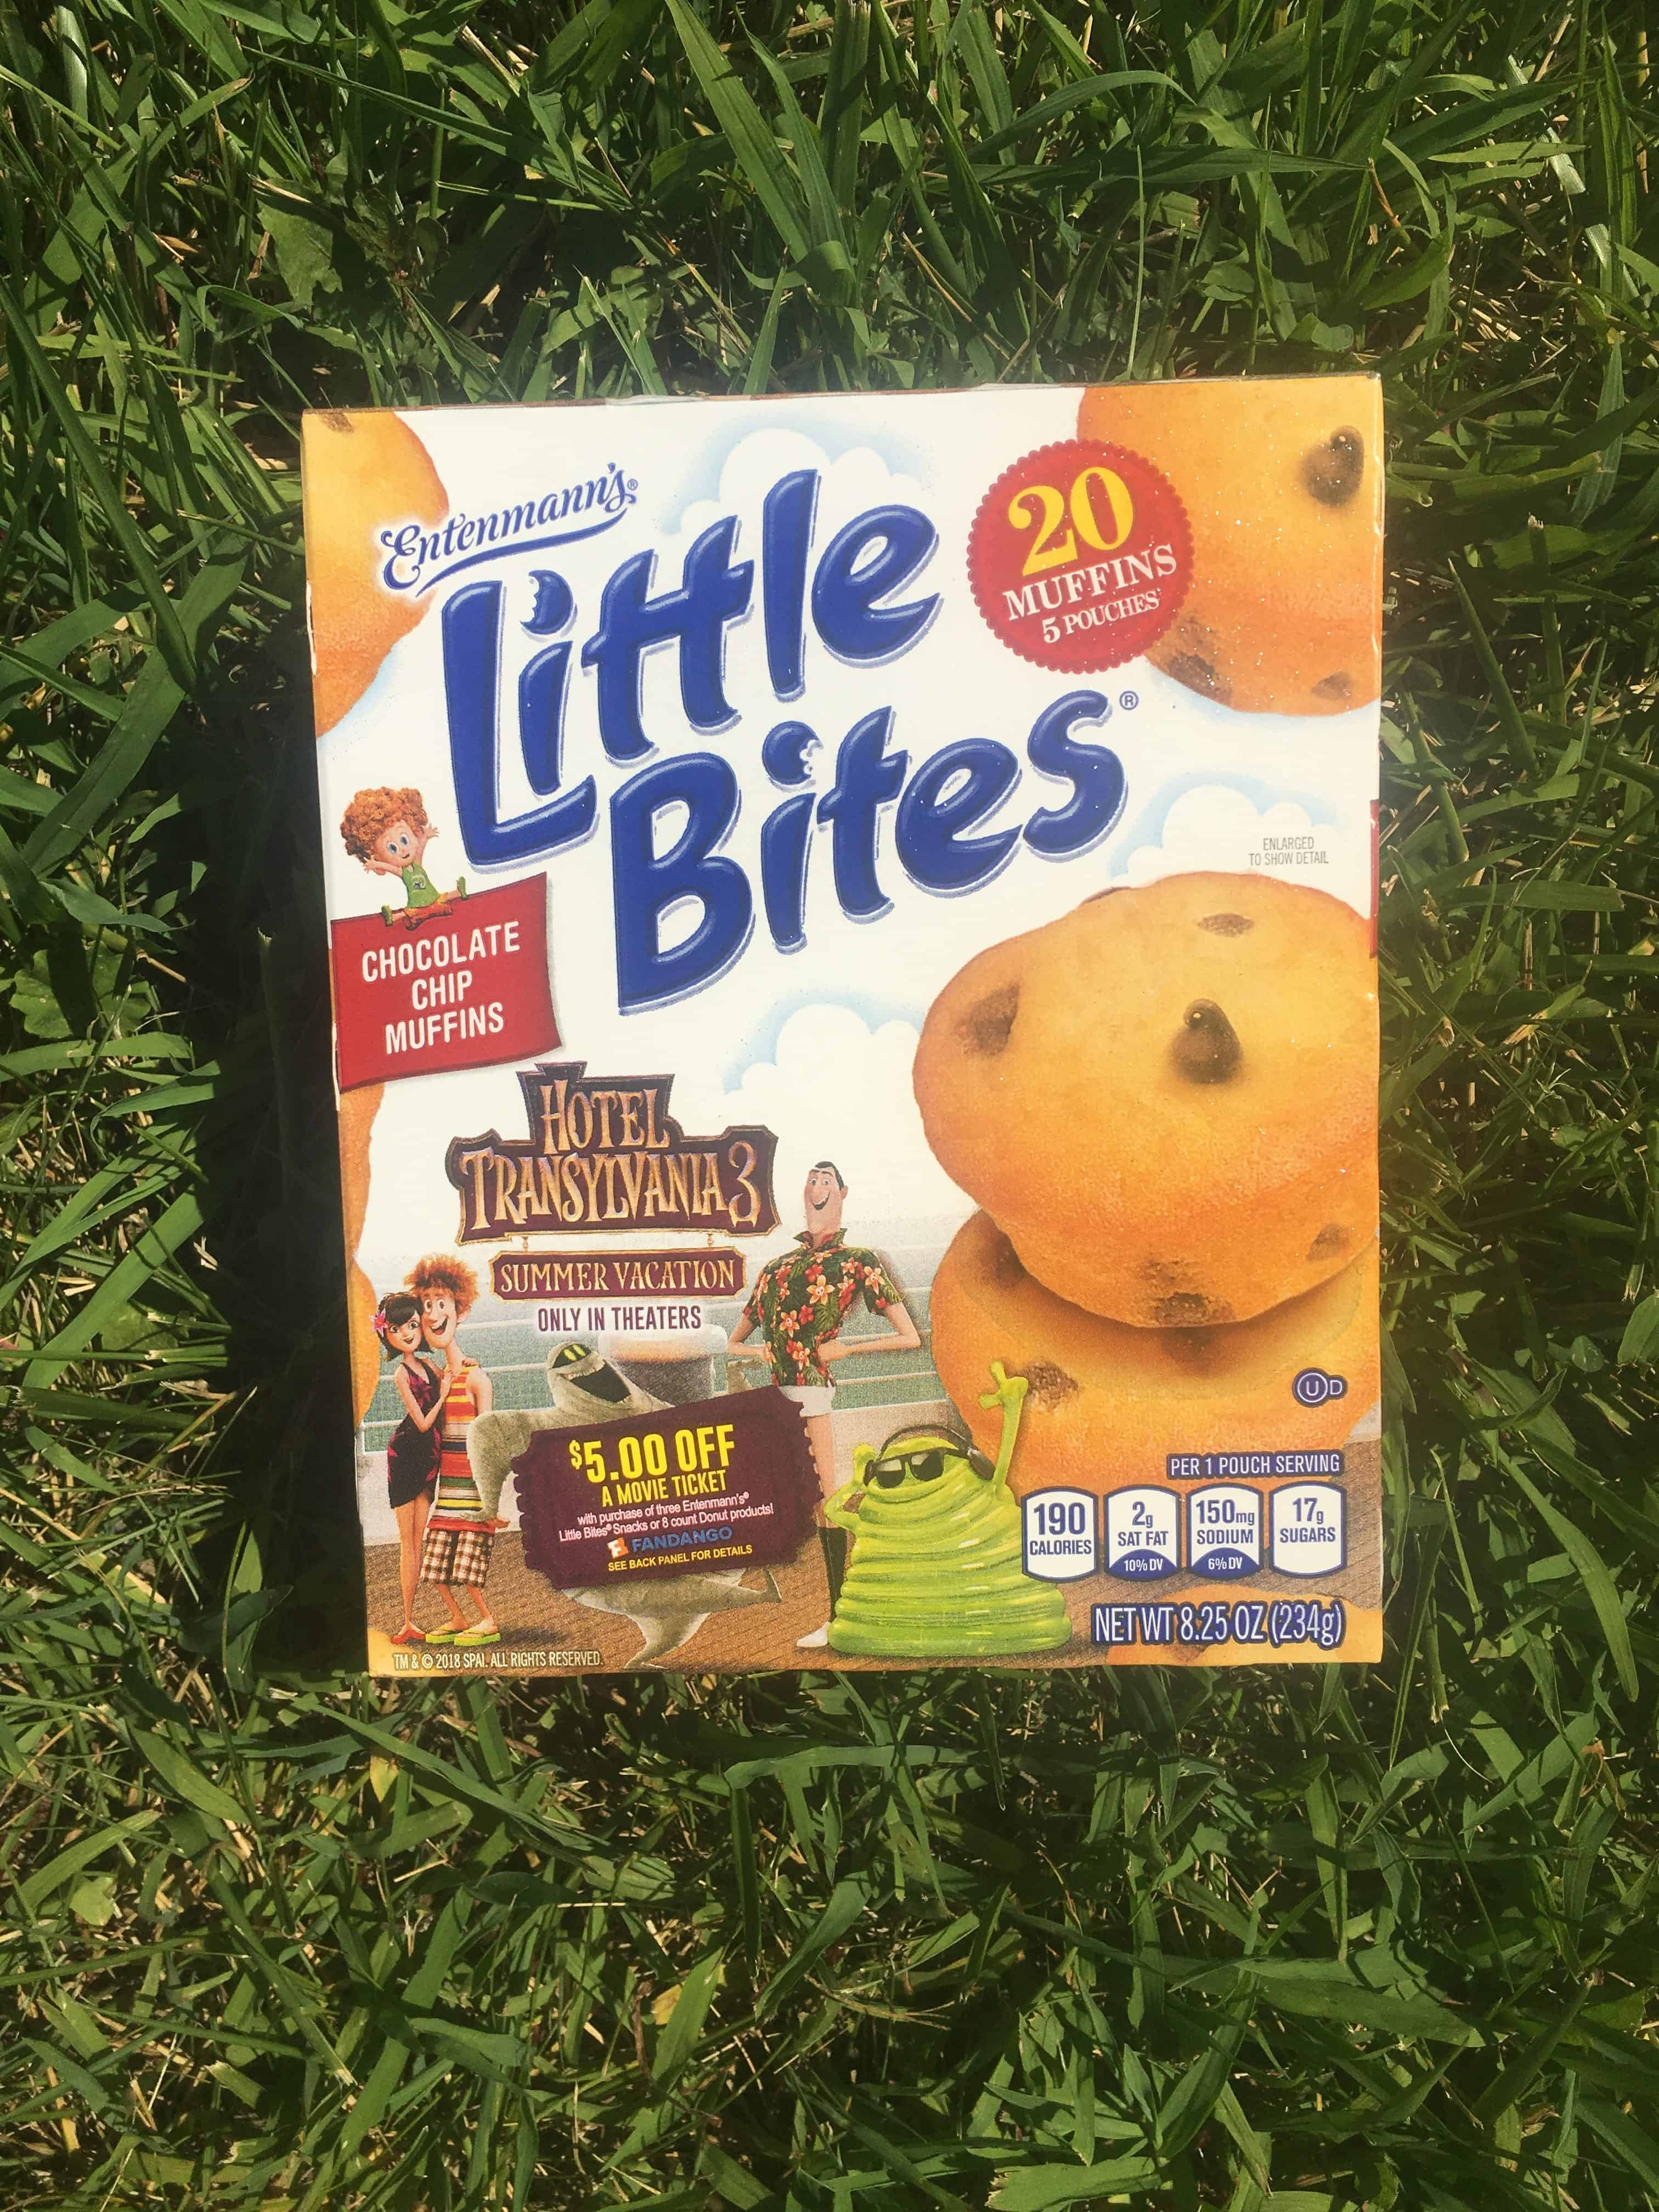 Little Bites Hotel Transylvania 3 Giveaway includes $25 Visa digital gift card and (3) coupons for $7.00 off the purchase of any Entenmann's® products